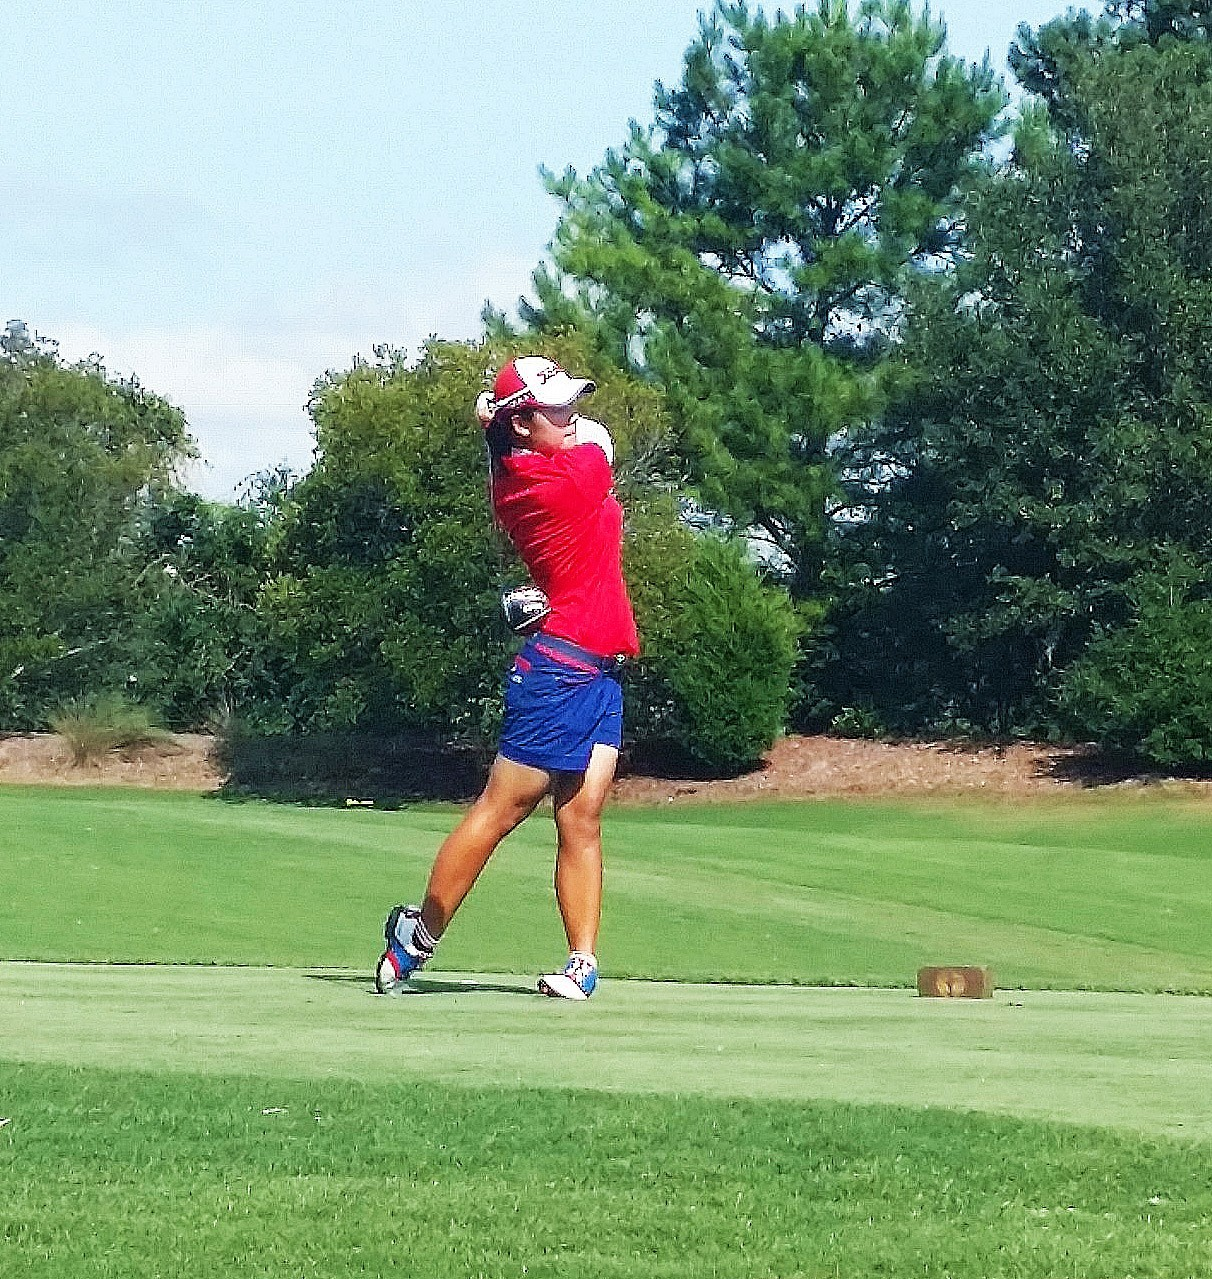 Yeji tees off on the first hole